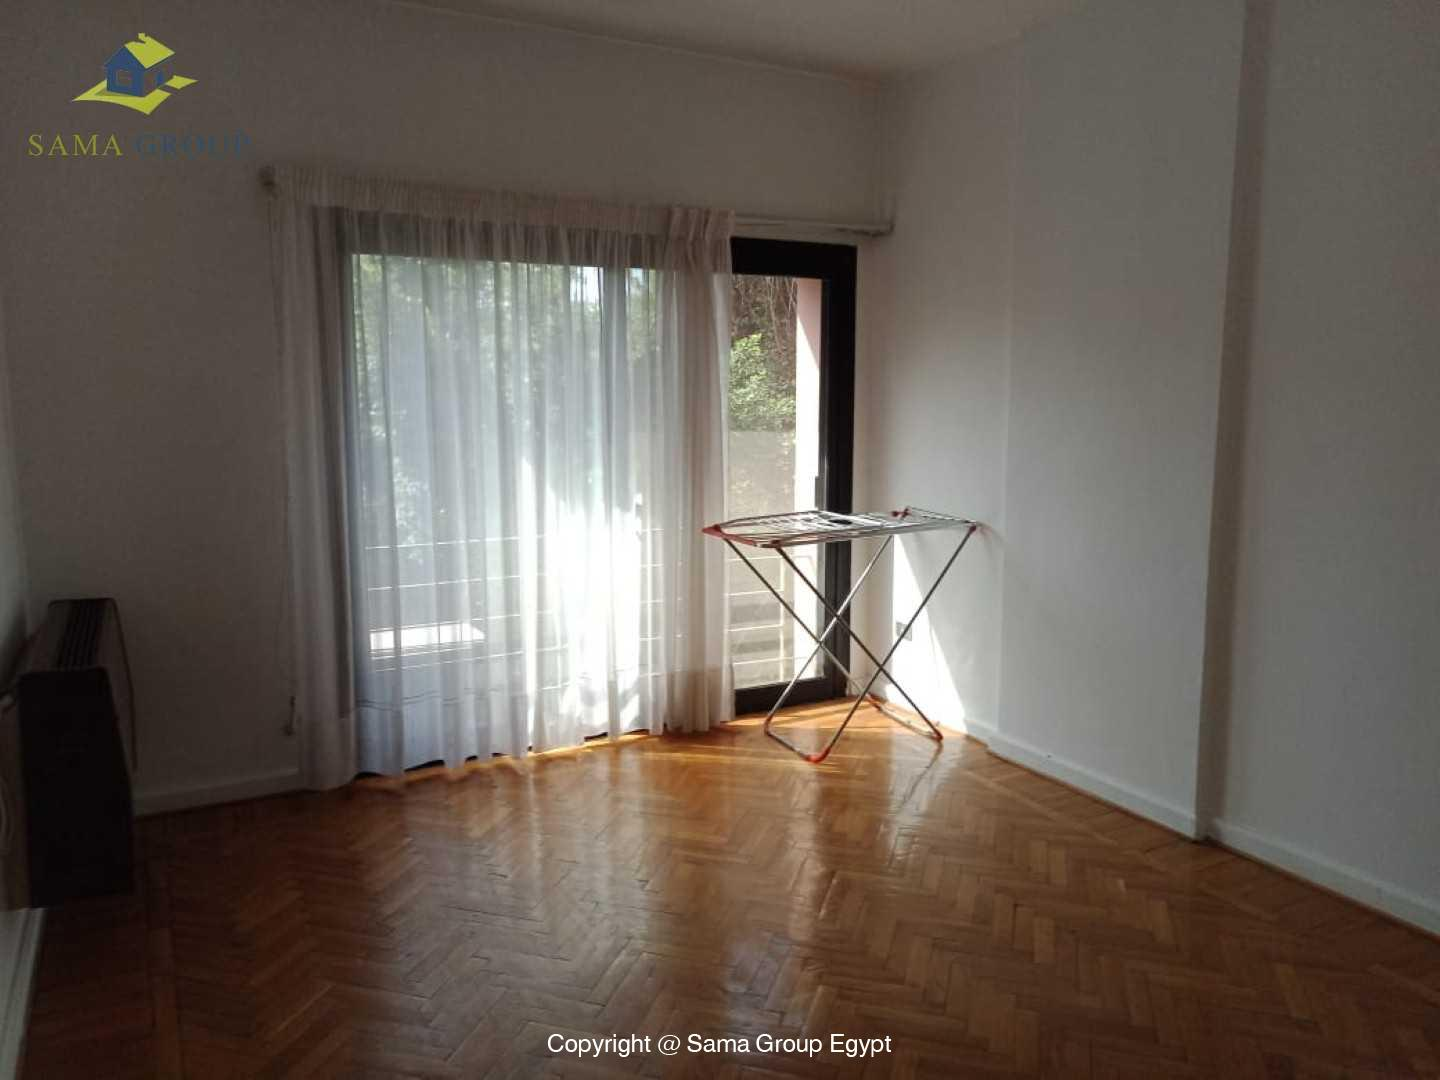 Semi Furnished Apartment For Rent In Maadi Sarayat,Semi furnished,Apartment NO #17